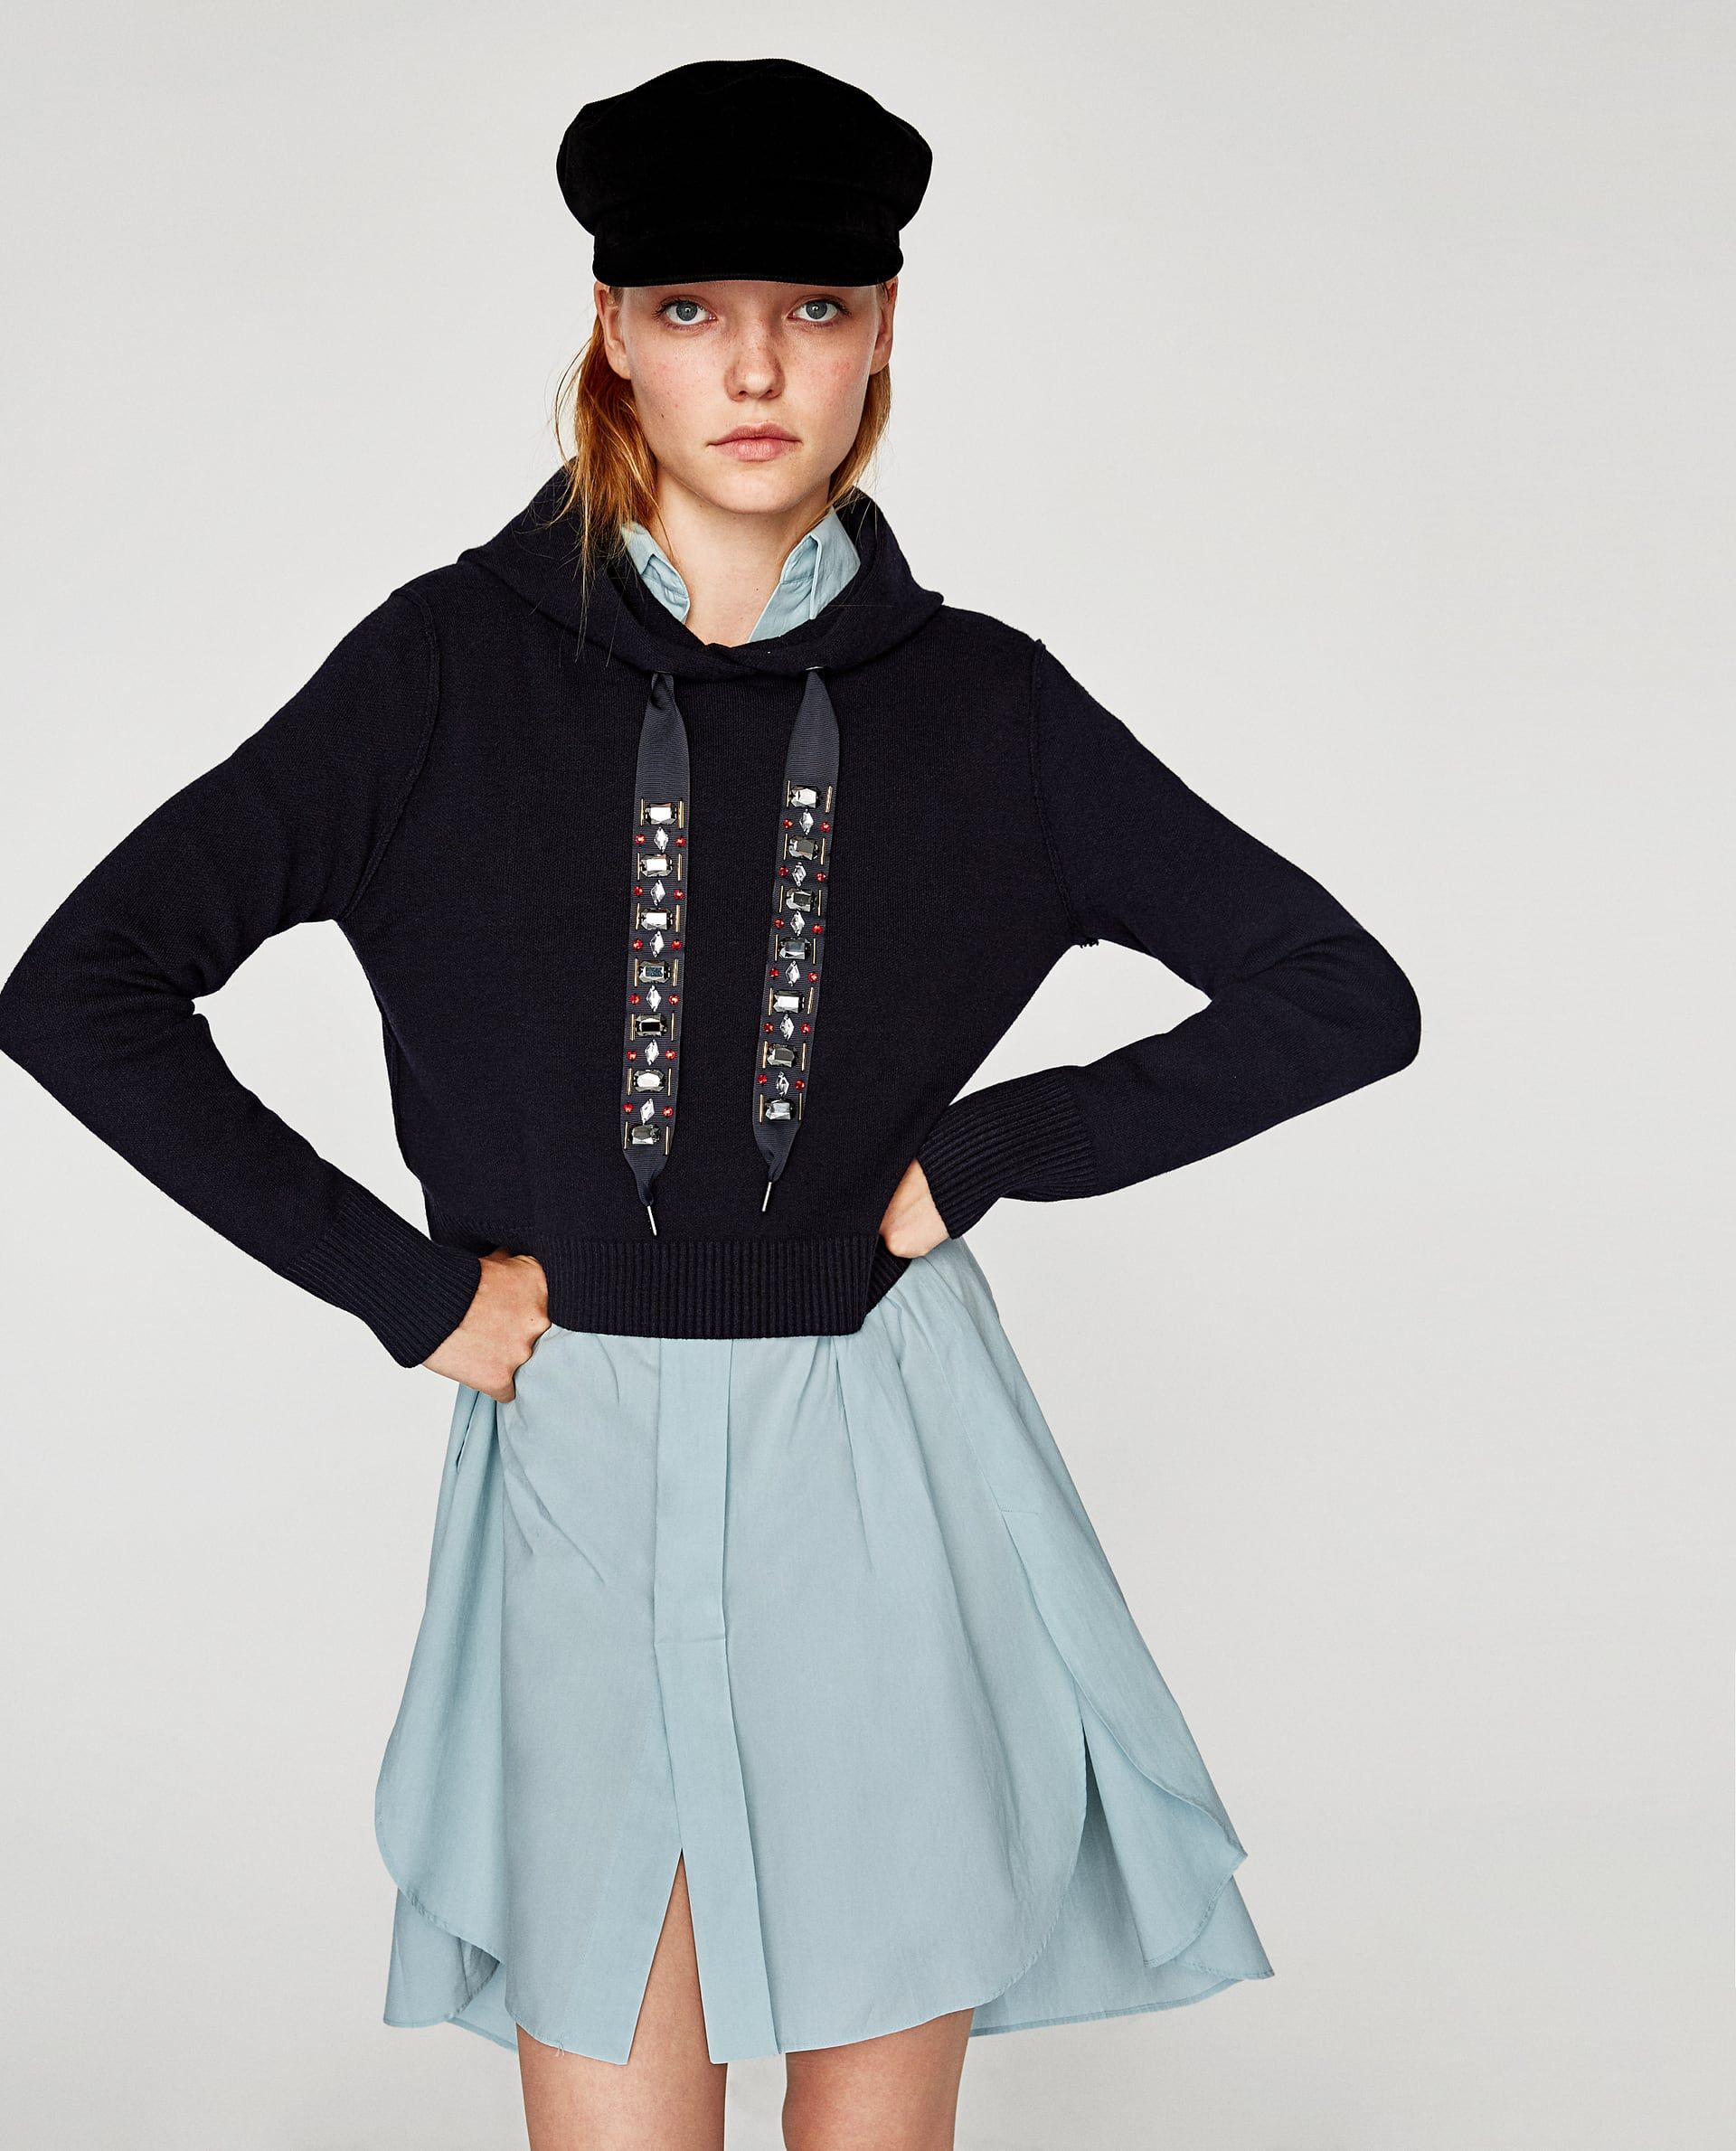 c0b289c889b BEJEWELLED DRAWSTRING SWEATSHIRT  Zara  jeweled  sweatshirt  fallfashion   cybermonday